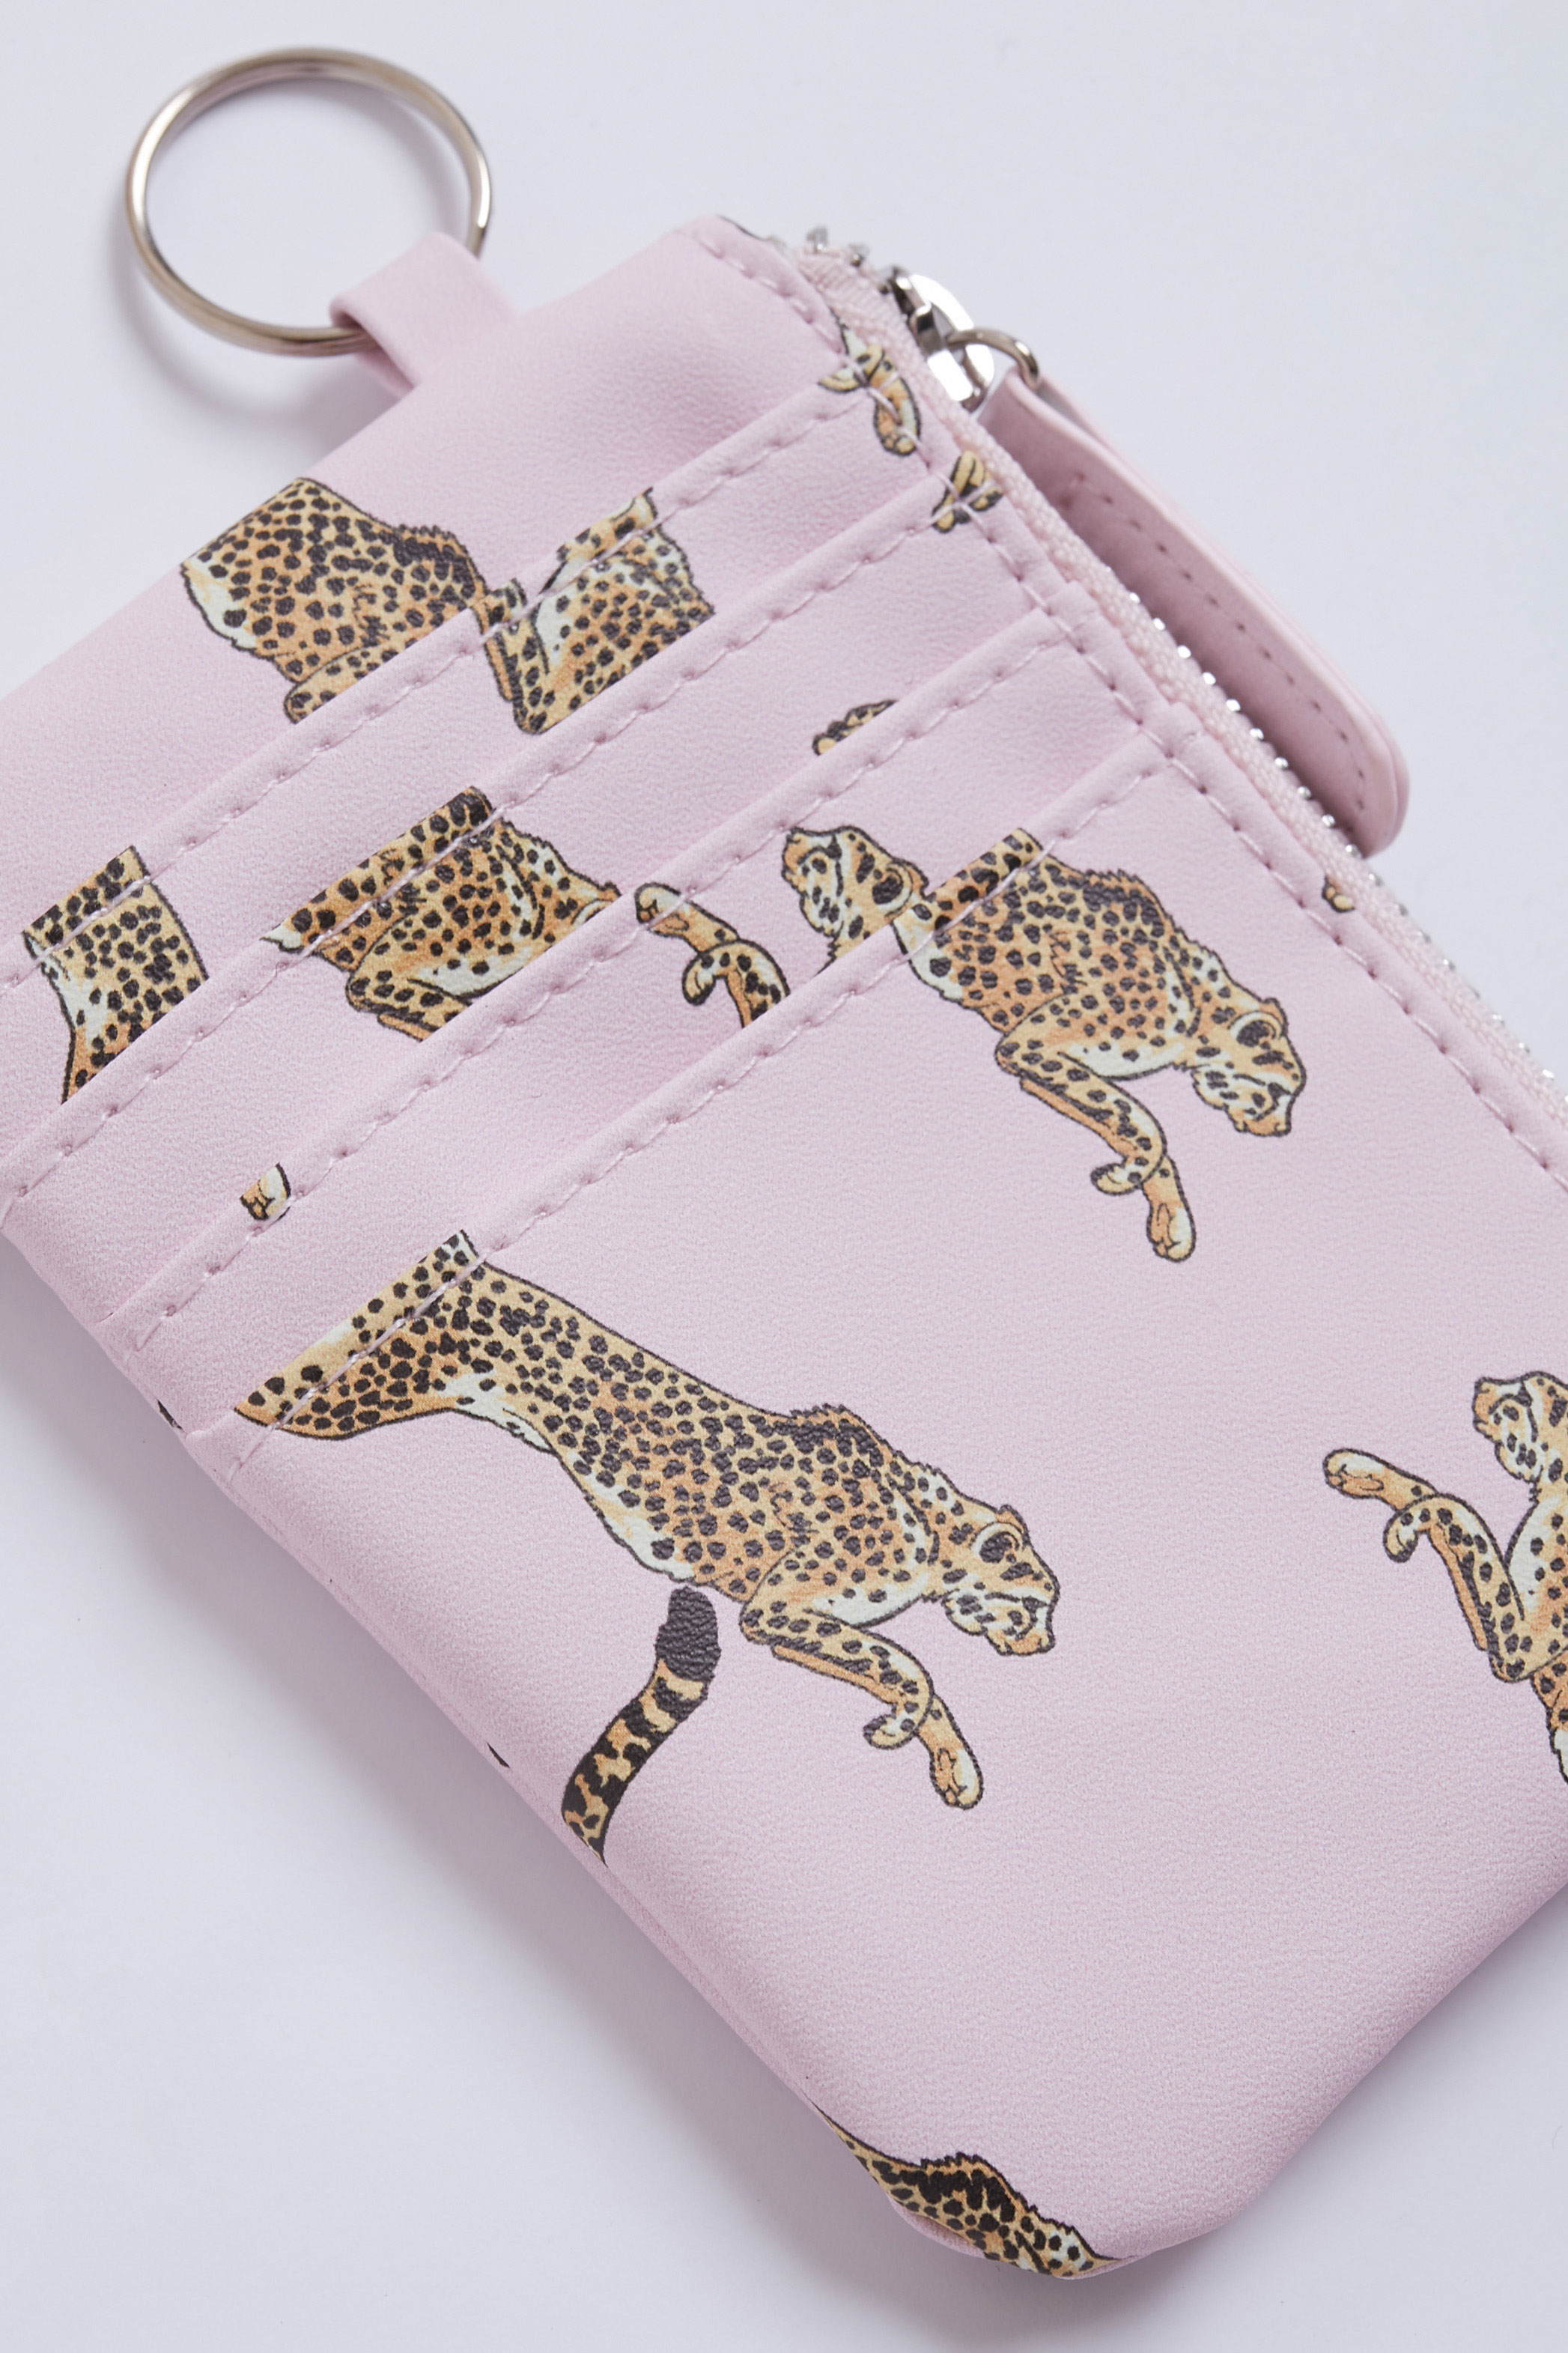 Leopards printed wallet